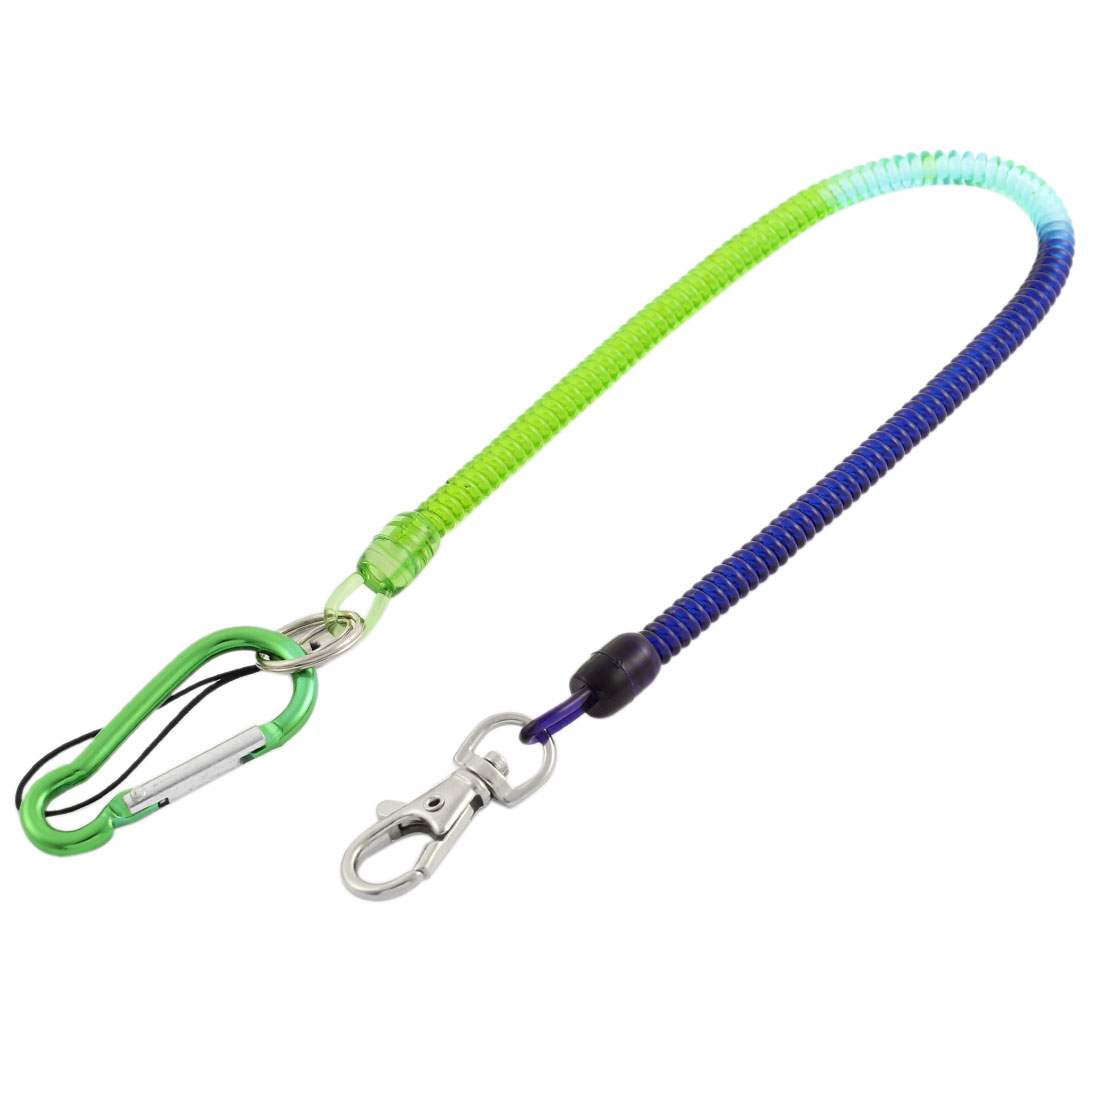 Flexible Stretchy Coil Cord Elastic Rope Strap Spring Telephone Key Chain Holder Pin